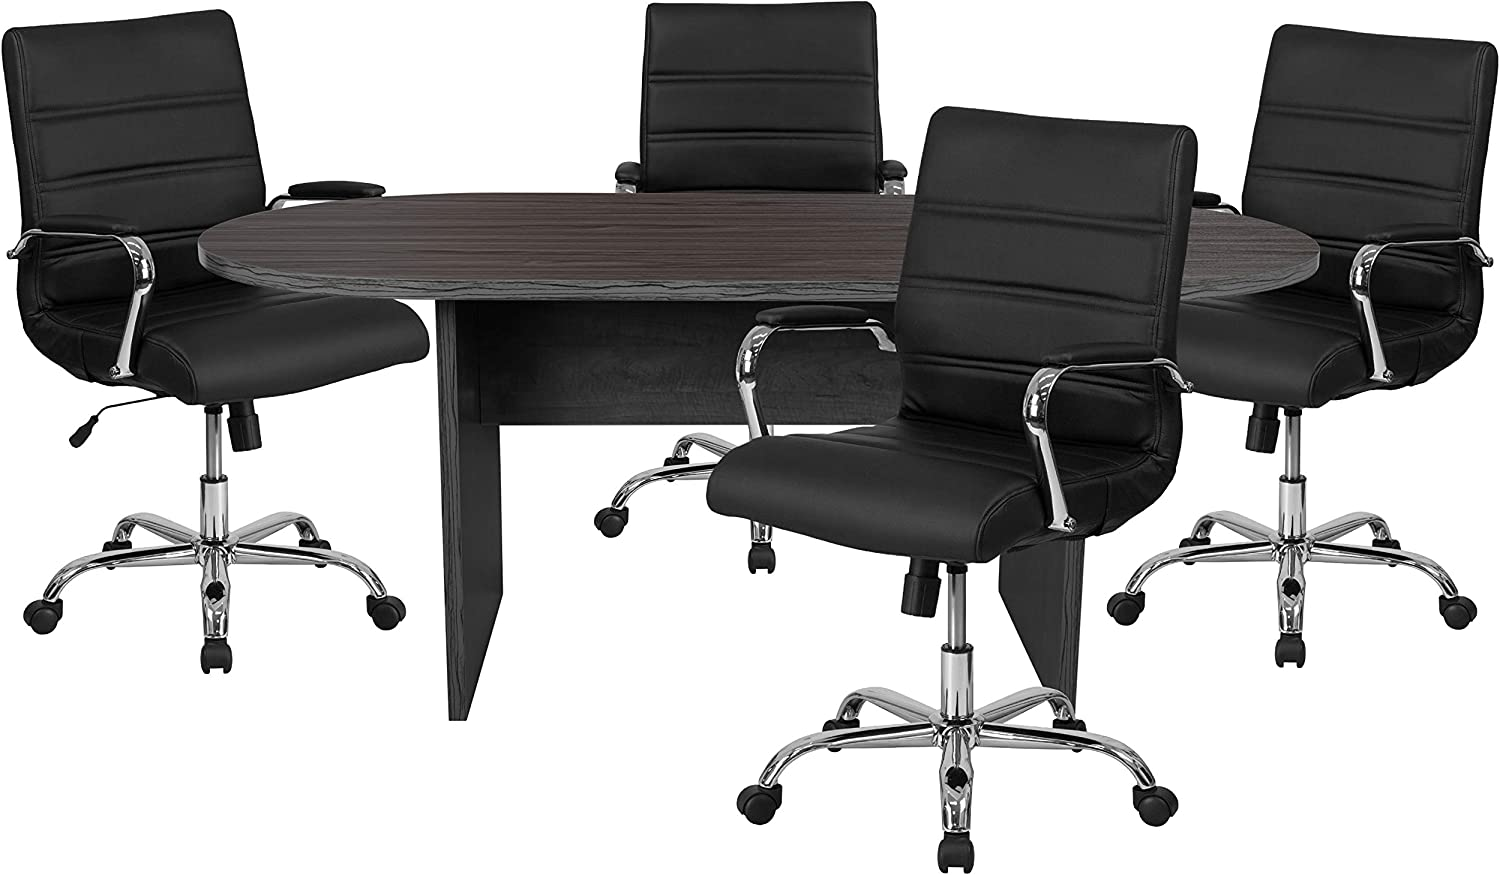 Flash Furniture 5 Piece Rustic Gray Oval Conference Table Set with 4 Black and Chrome LeatherSoft Executive Chairs